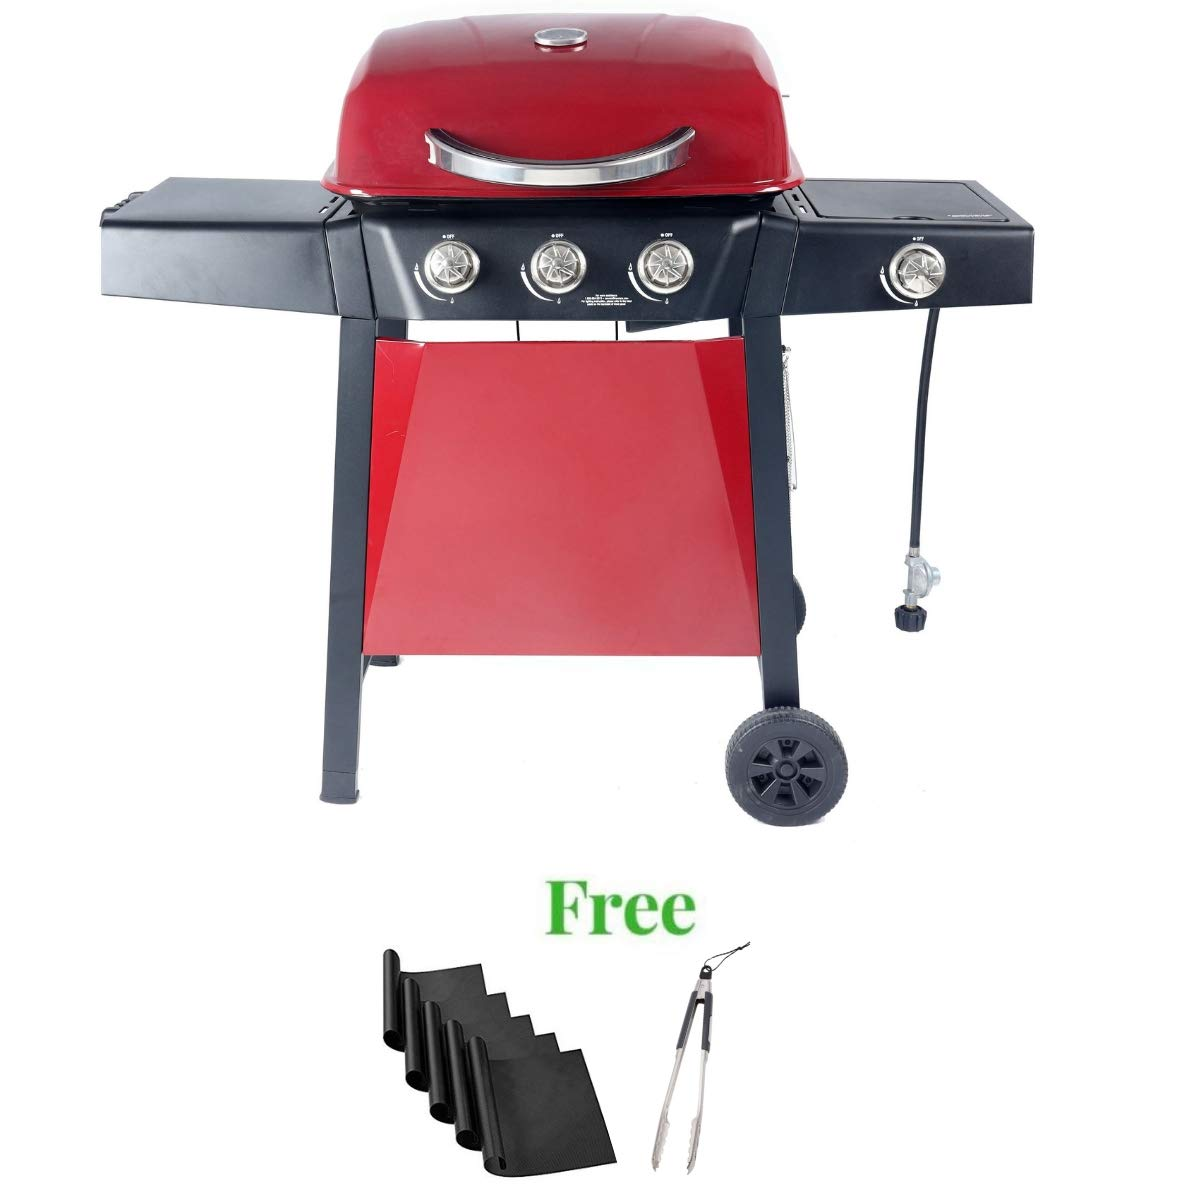 Durable Outdoor Barbeque & Burger Gas/Charcoal Grill (3-Burner Gril + Freebie, Red)